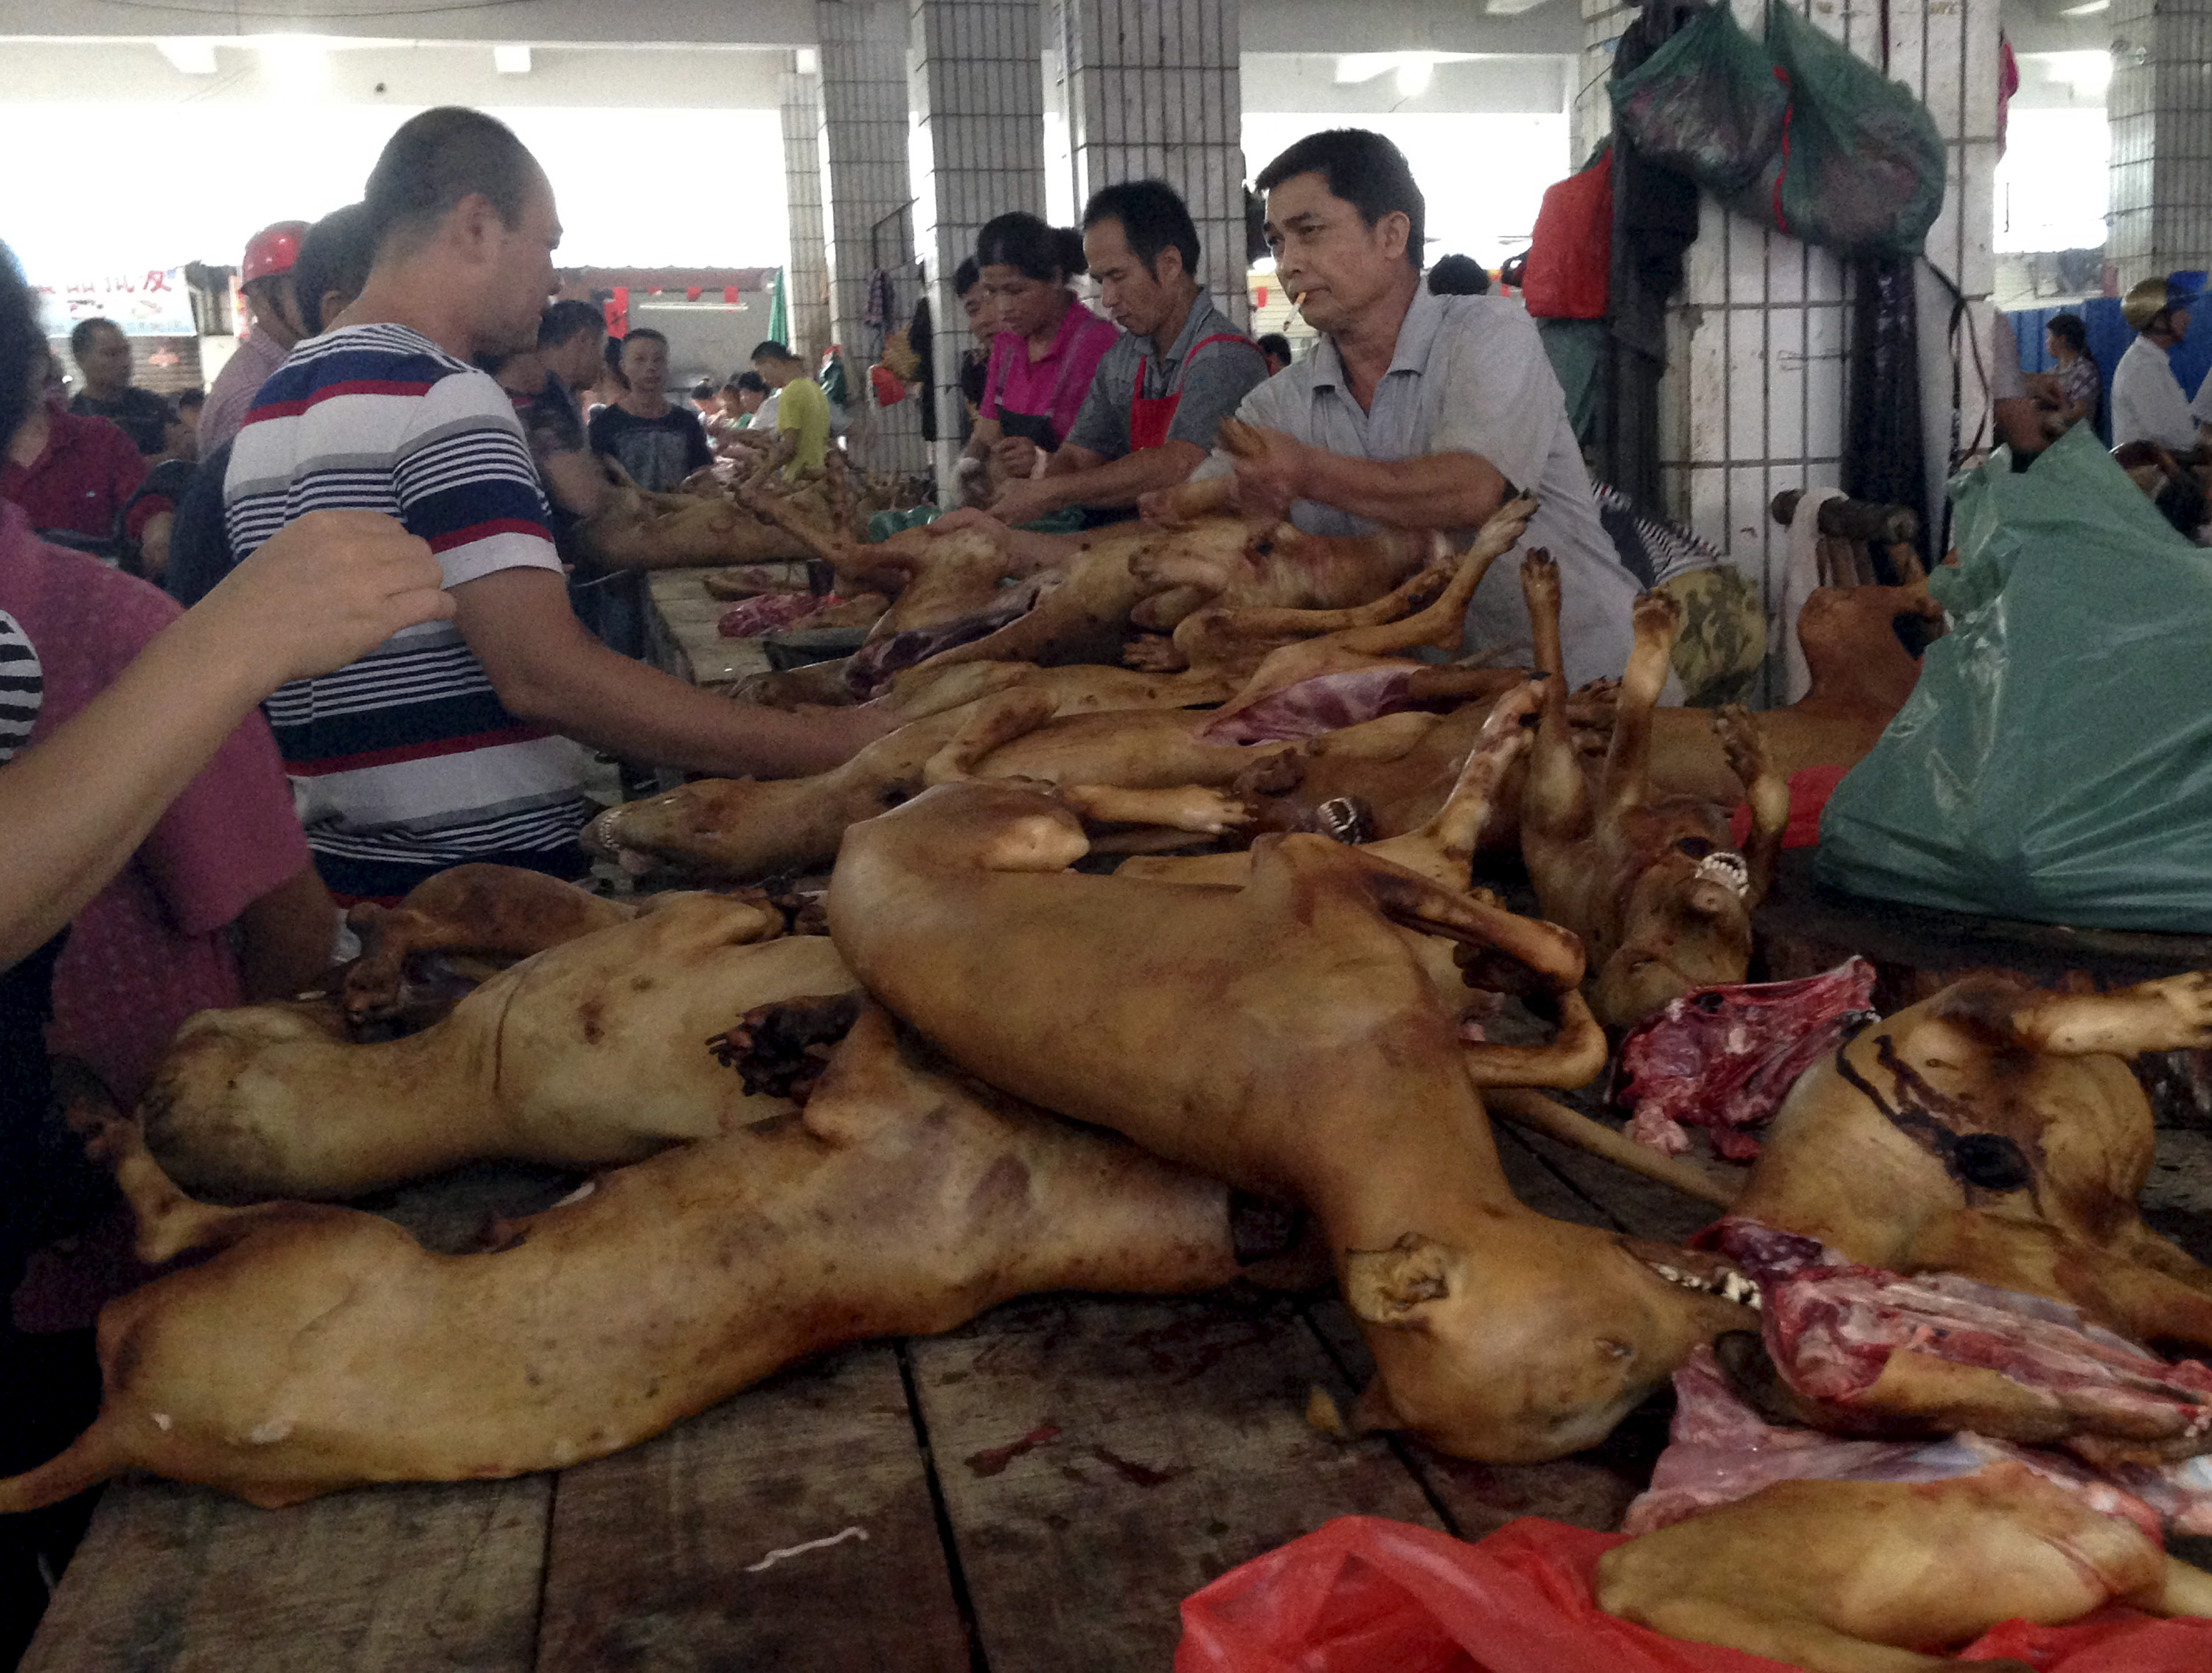 Vendors sell dog meat at a dog meat market on the day of local dog meat festival in Yulin, Guangxi Autonomous Region, June 22, 2015. (REUTERS/Kim Kyung-Hoon - GF10000135513)